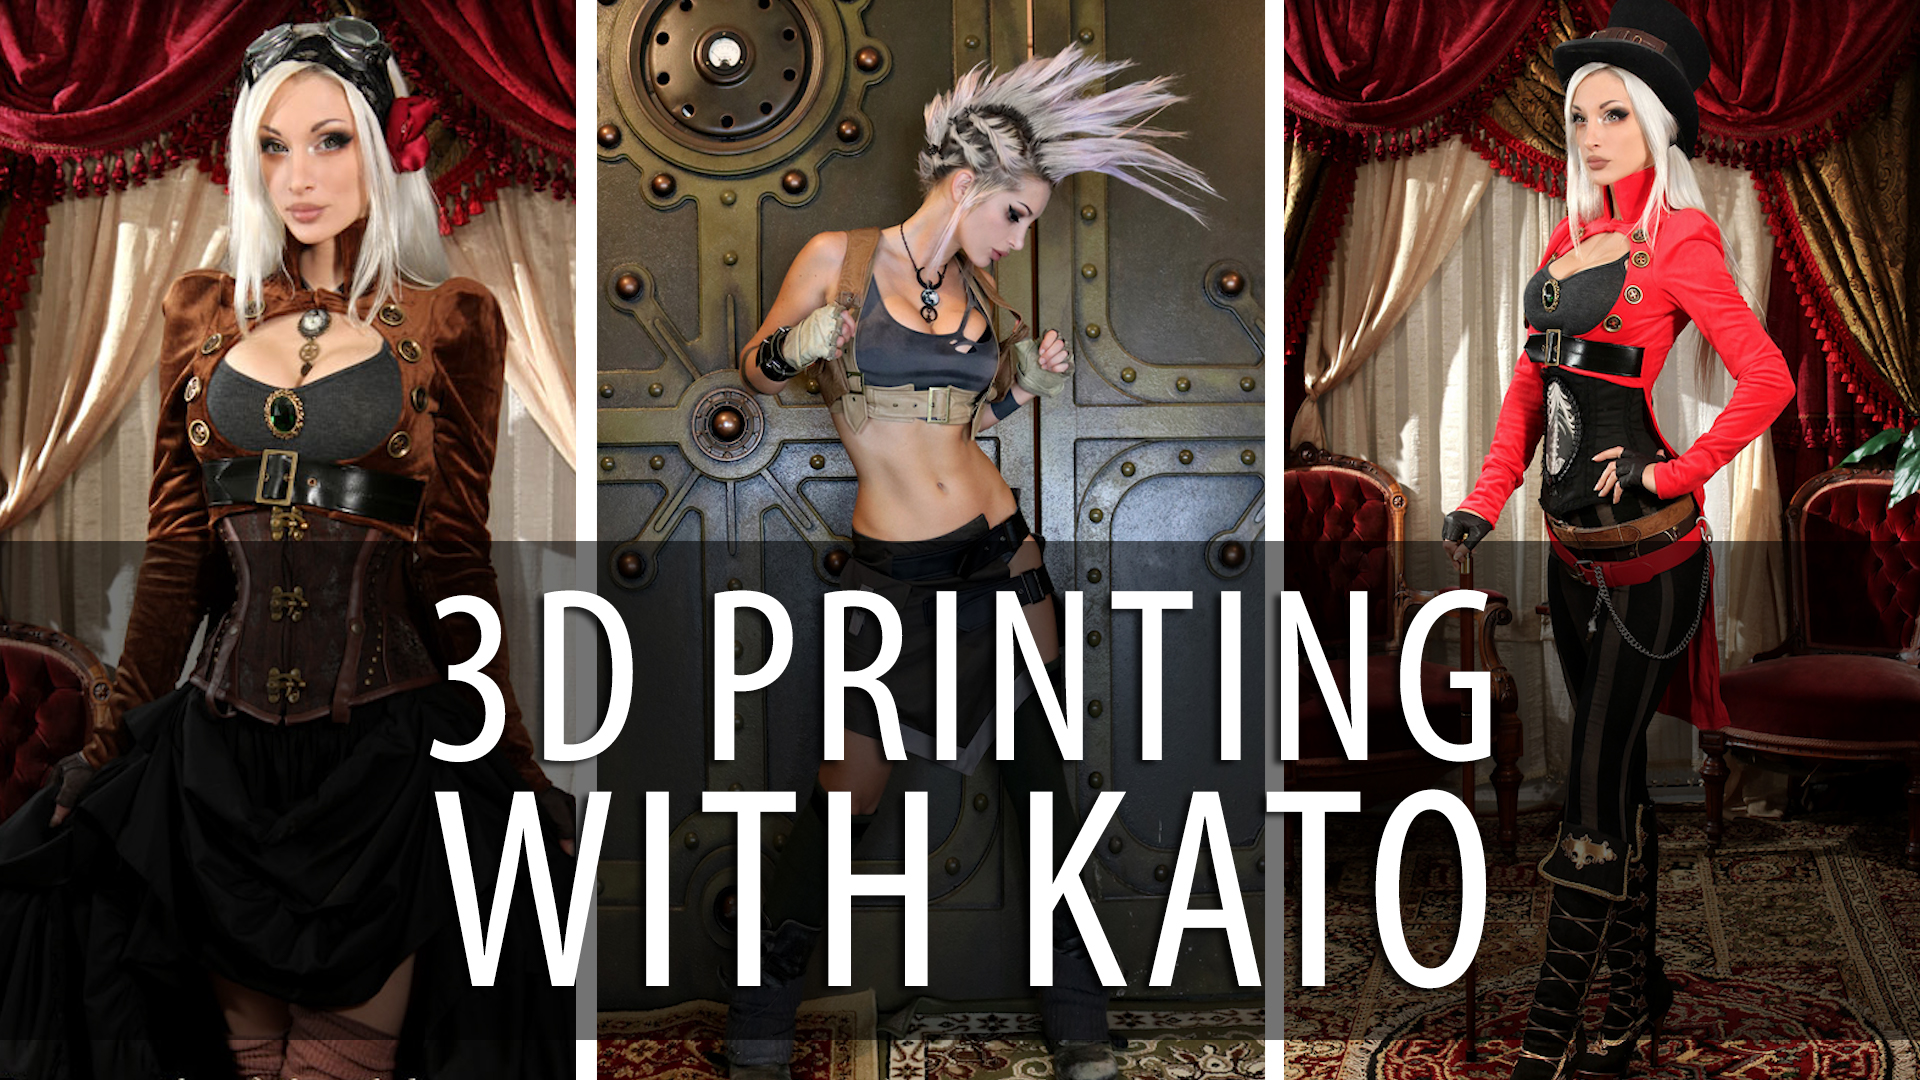 3D Printing Steampunk with Queen of Steam Kato